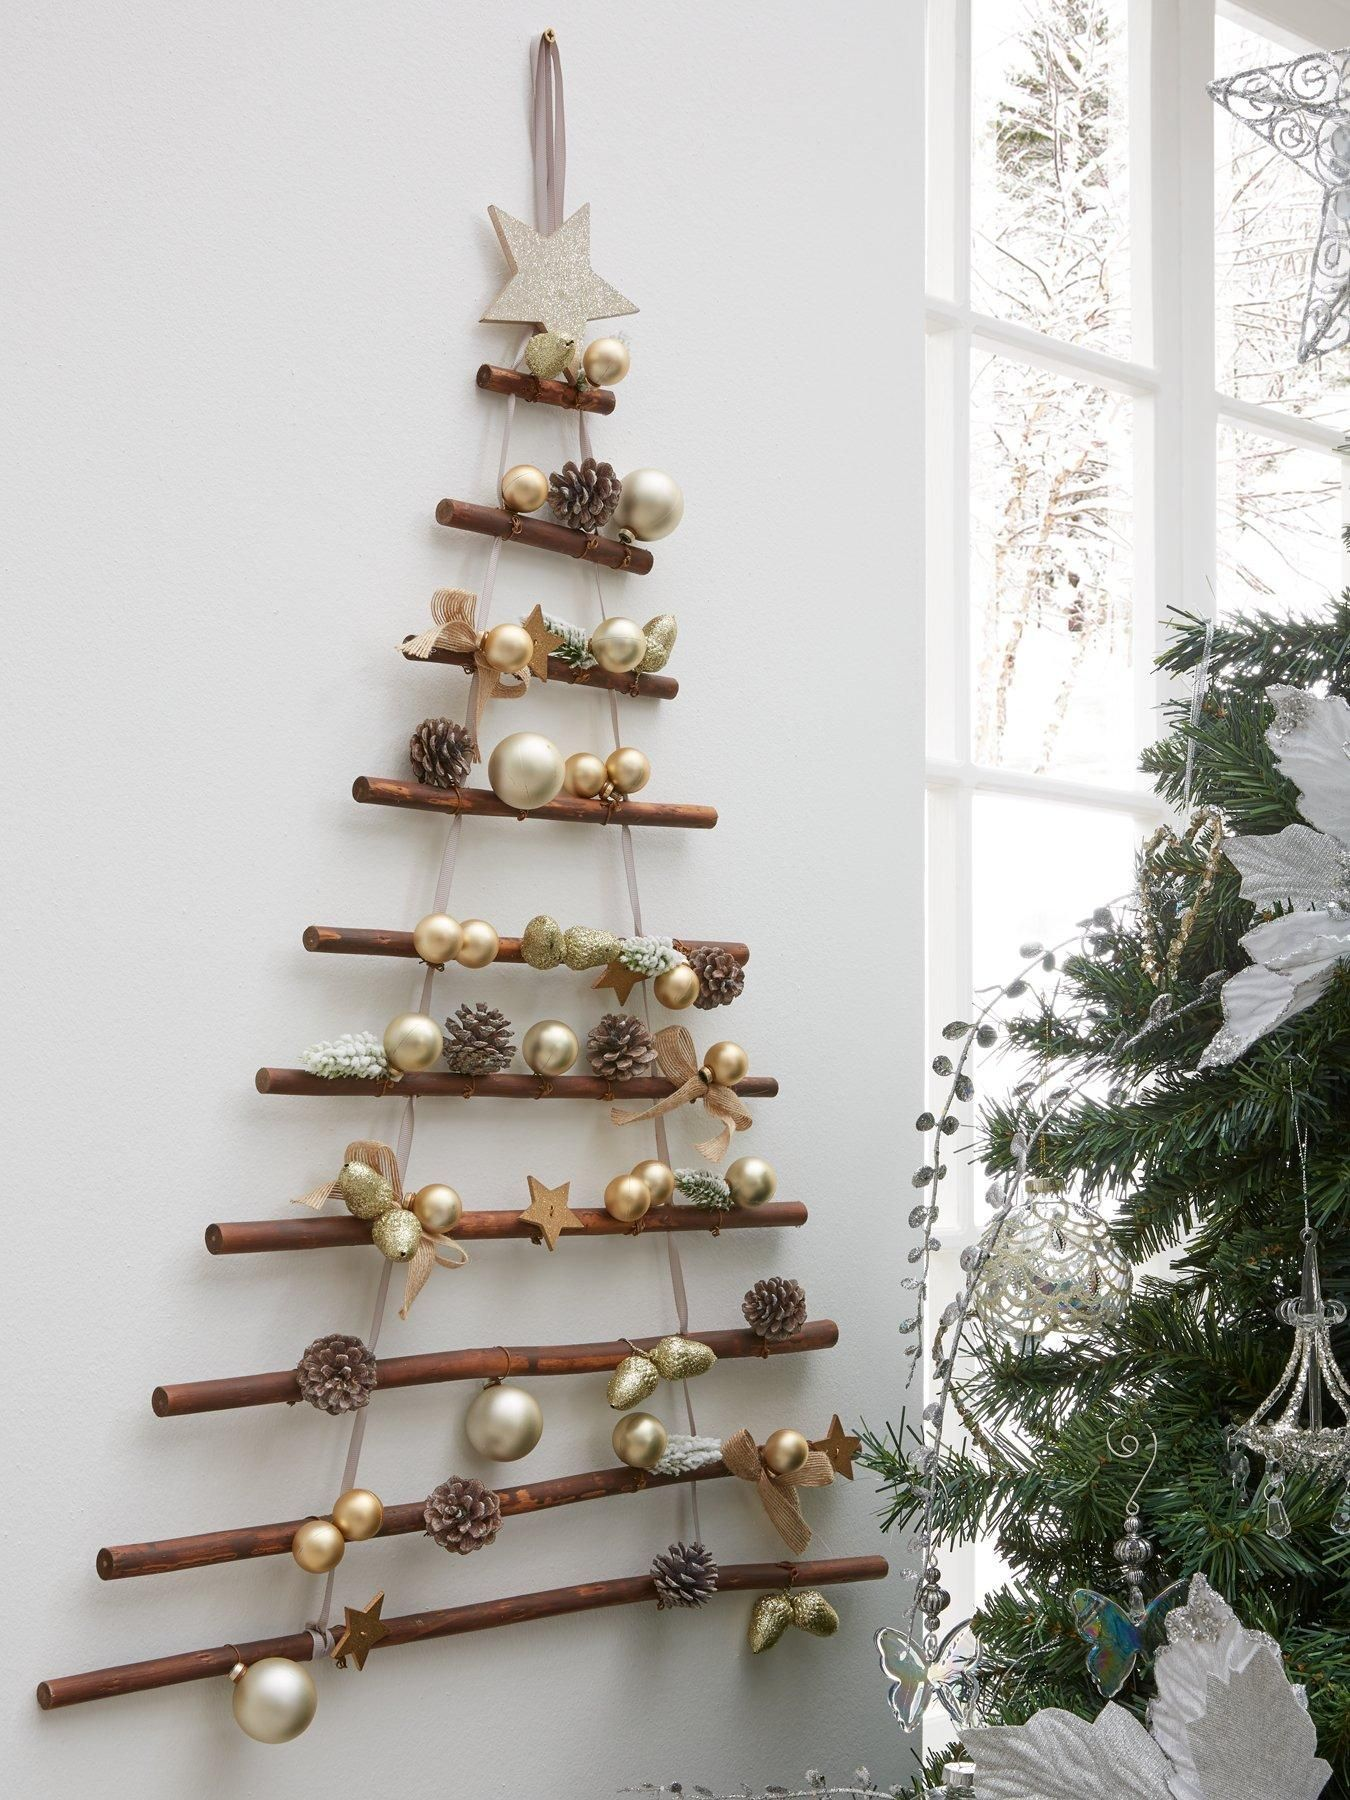 Wall Hanging Christmas Tree Decor Christmas Decor Hanging Tree Wall In 2020 Wall Hanging Christmas Tree Hanging Christmas Tree Wall Christmas Tree